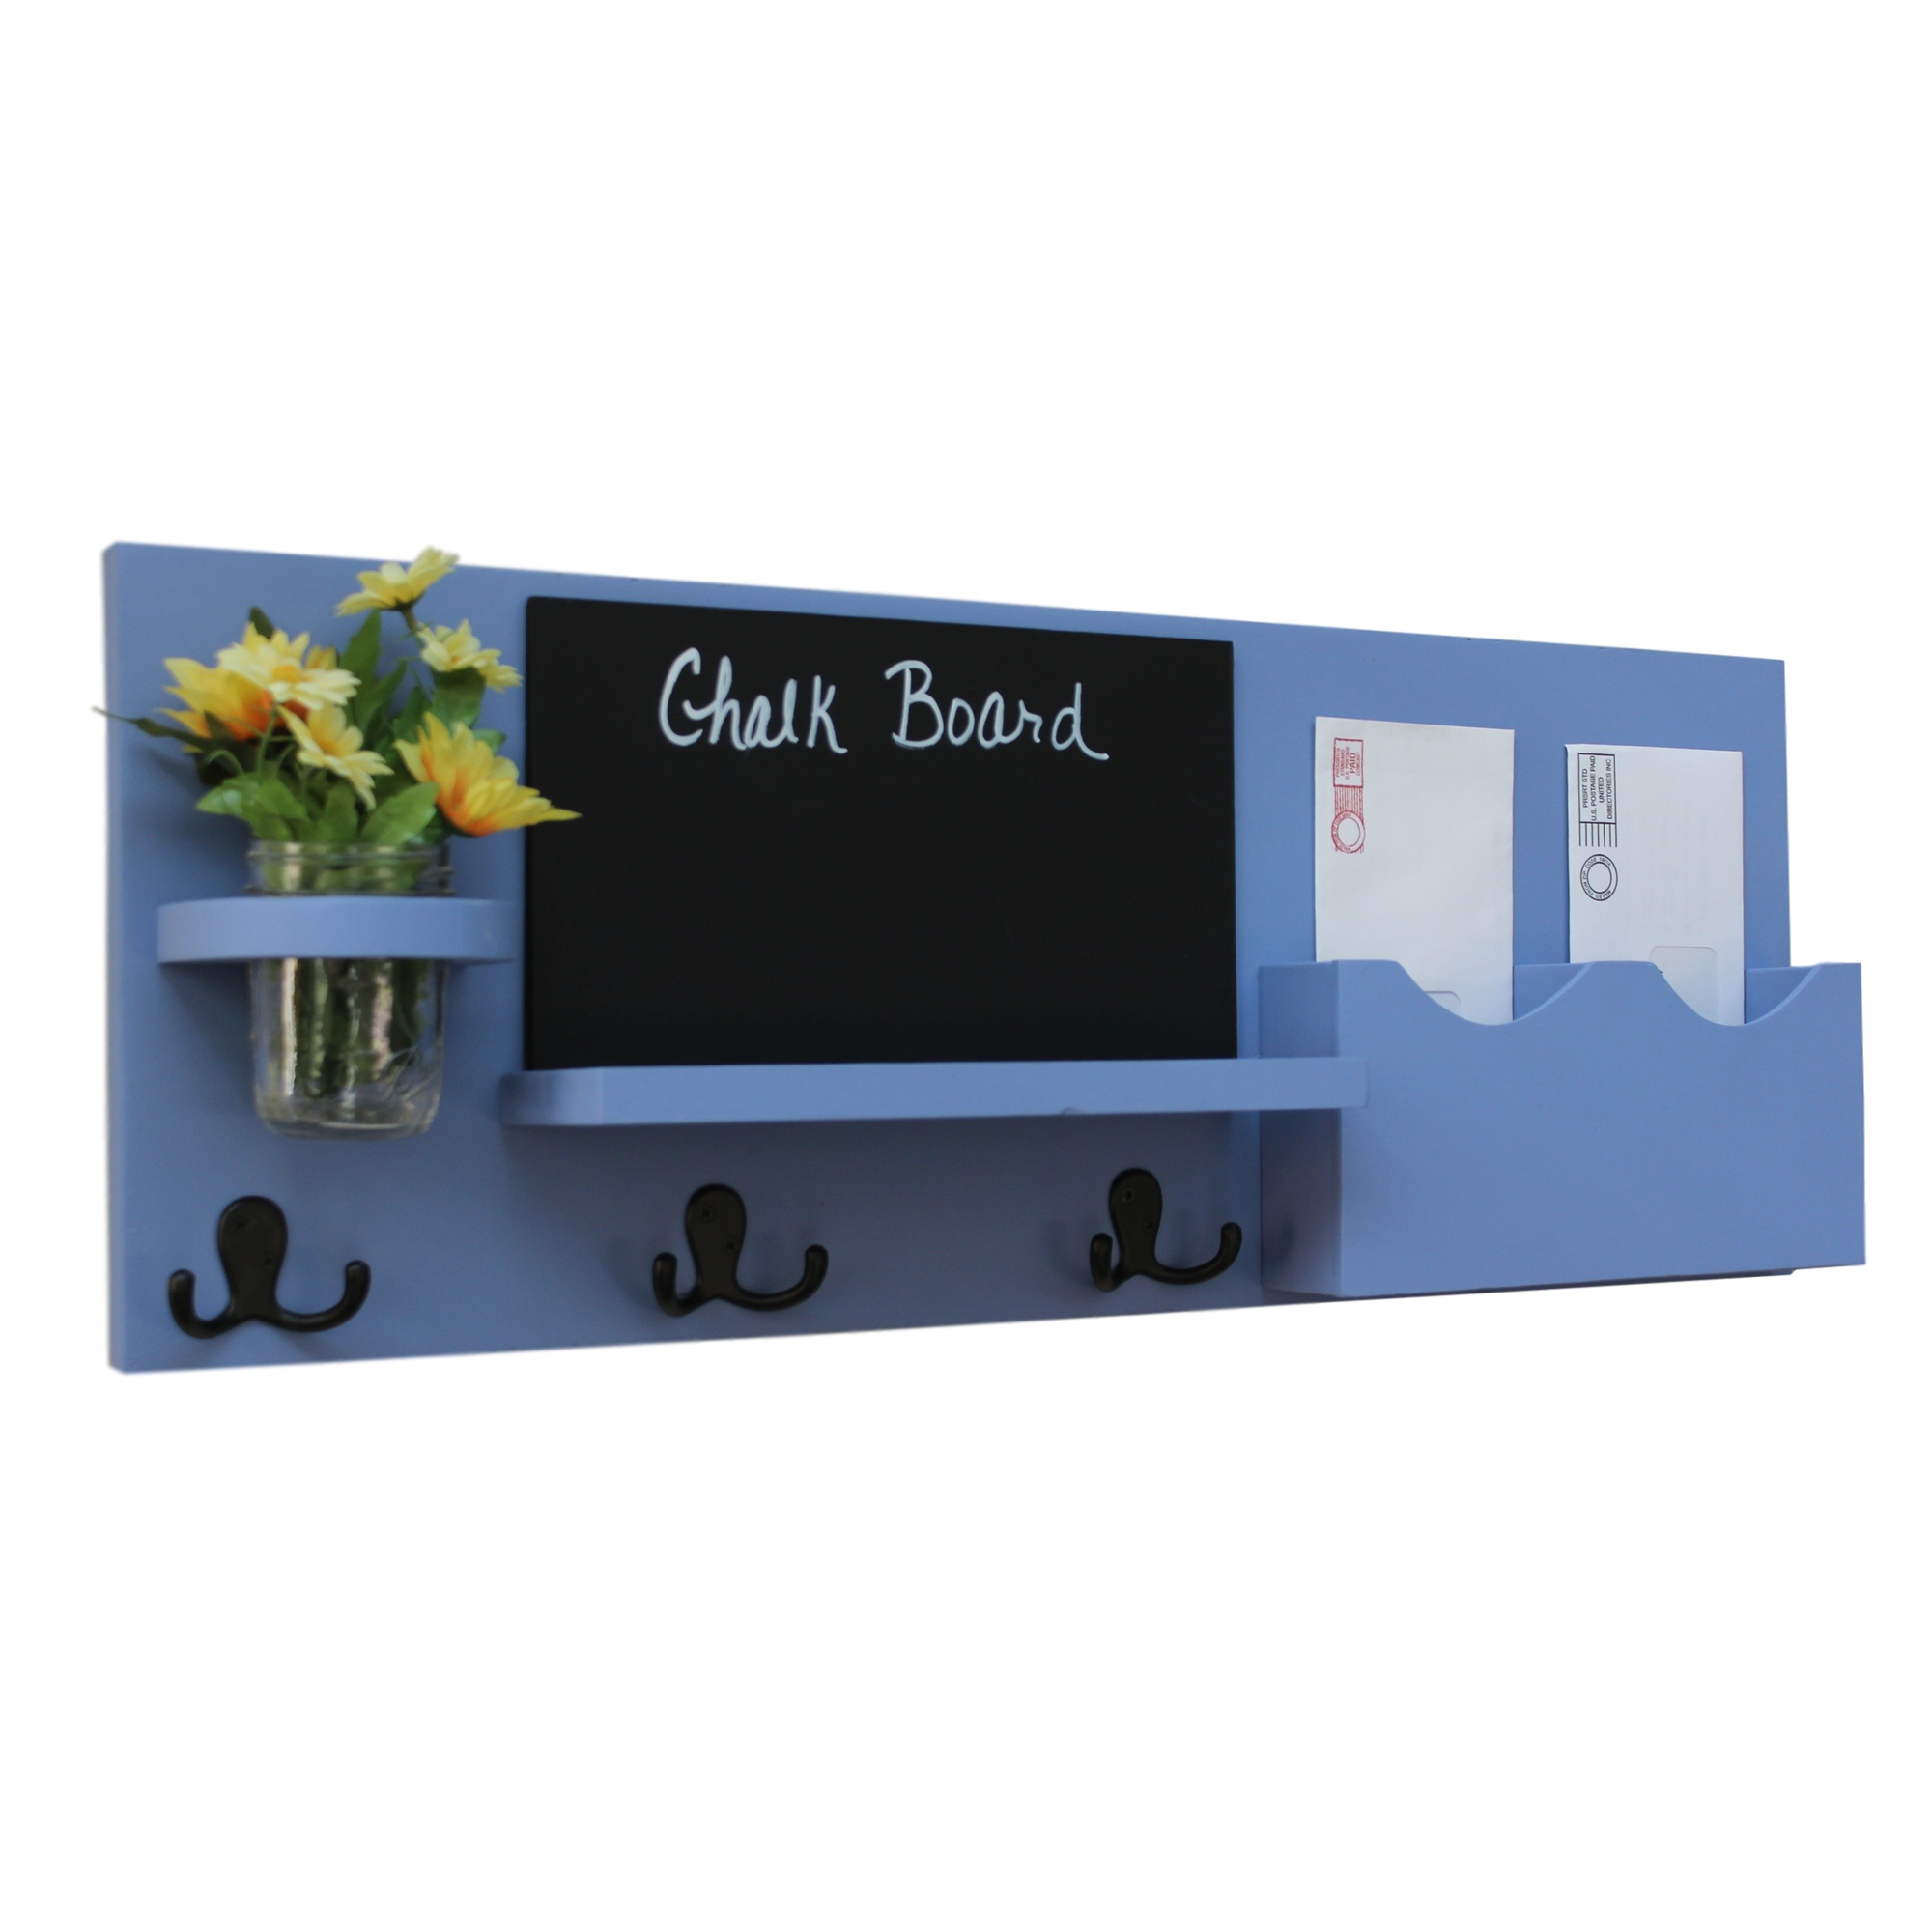 Mail Organizer with Chalkboard, Coat Hooks & Mason Jar